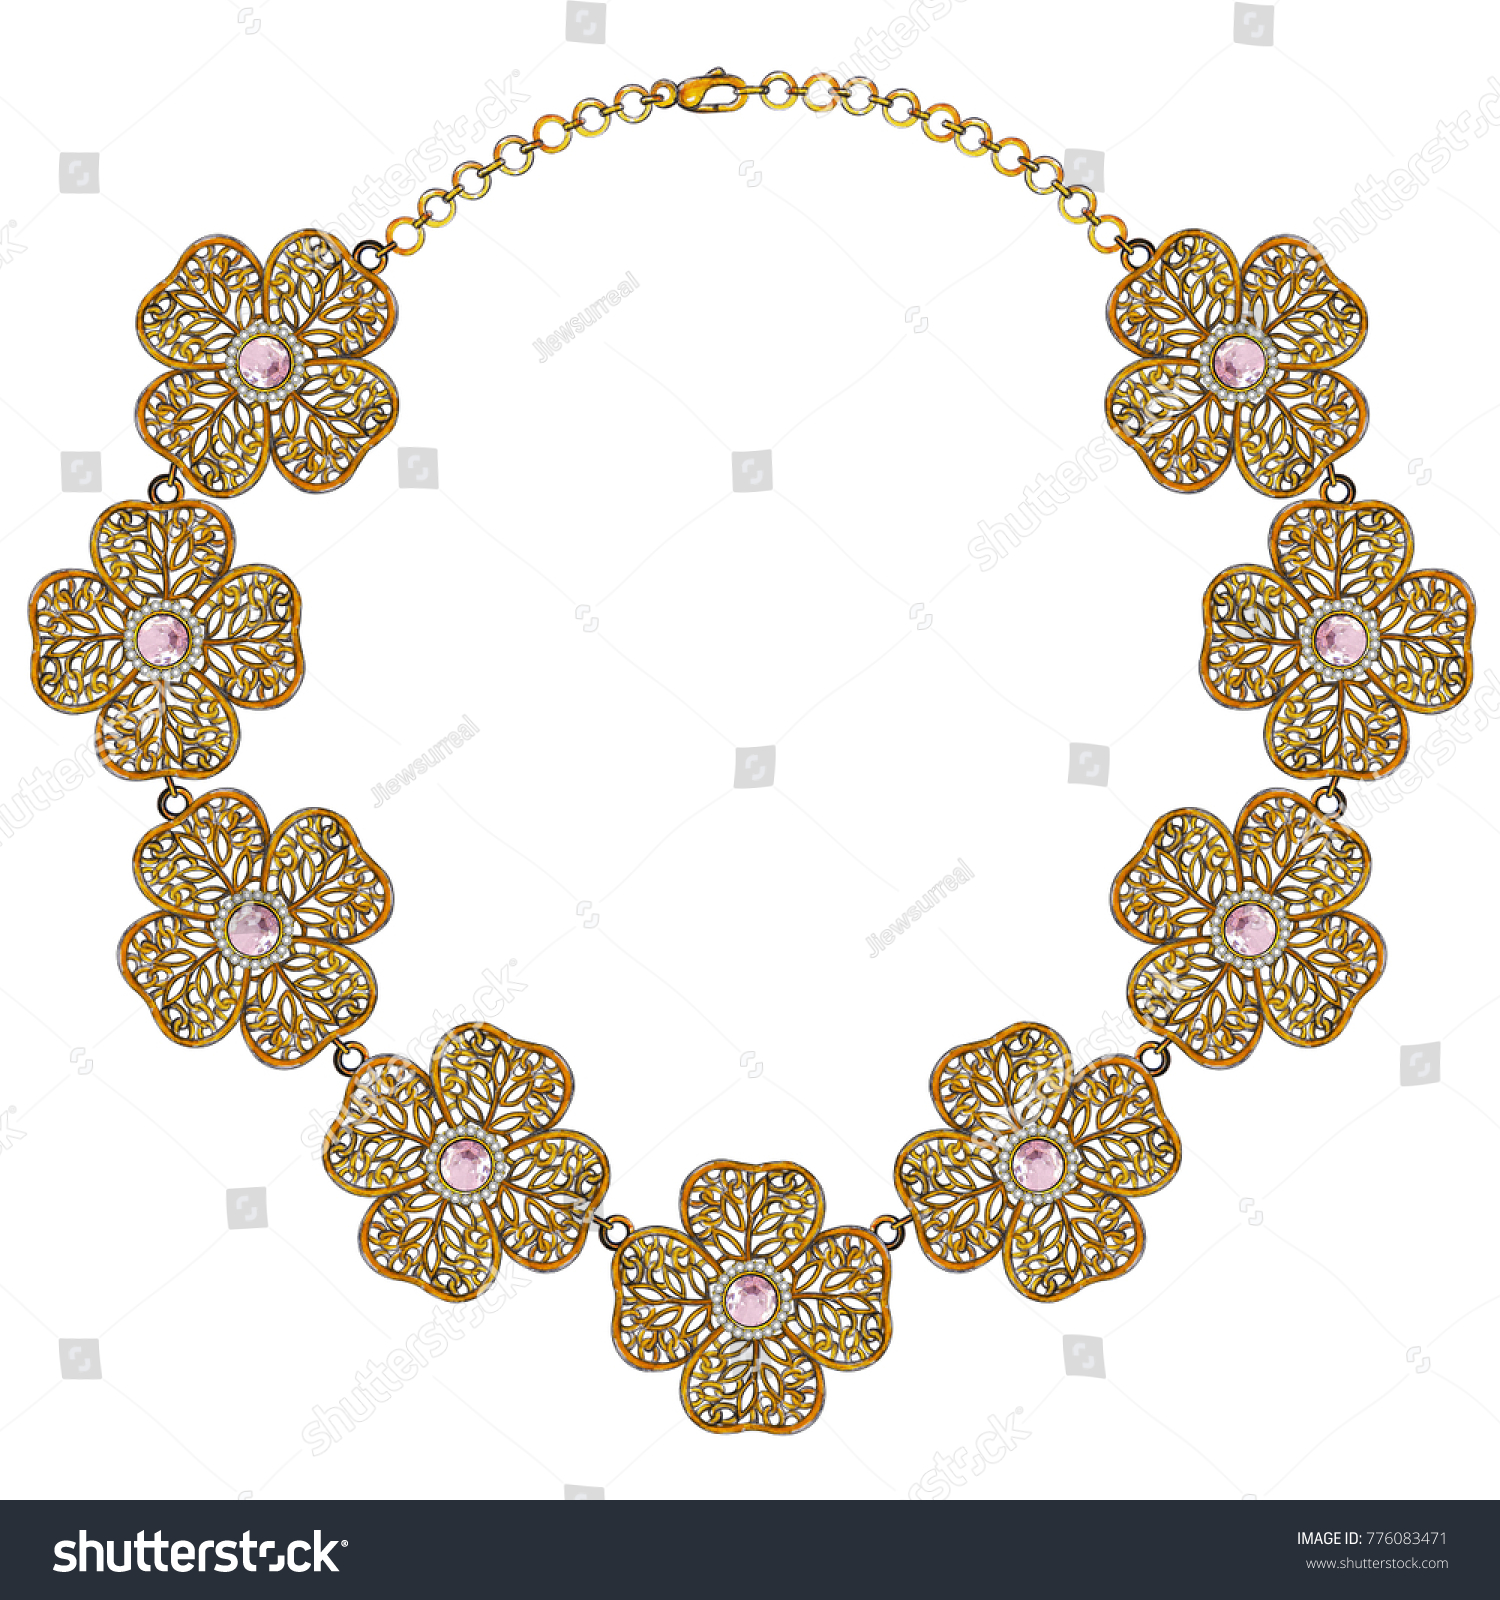 Jewelry Design Vintage Flower Gold Necklacehand Stock Illustration ...